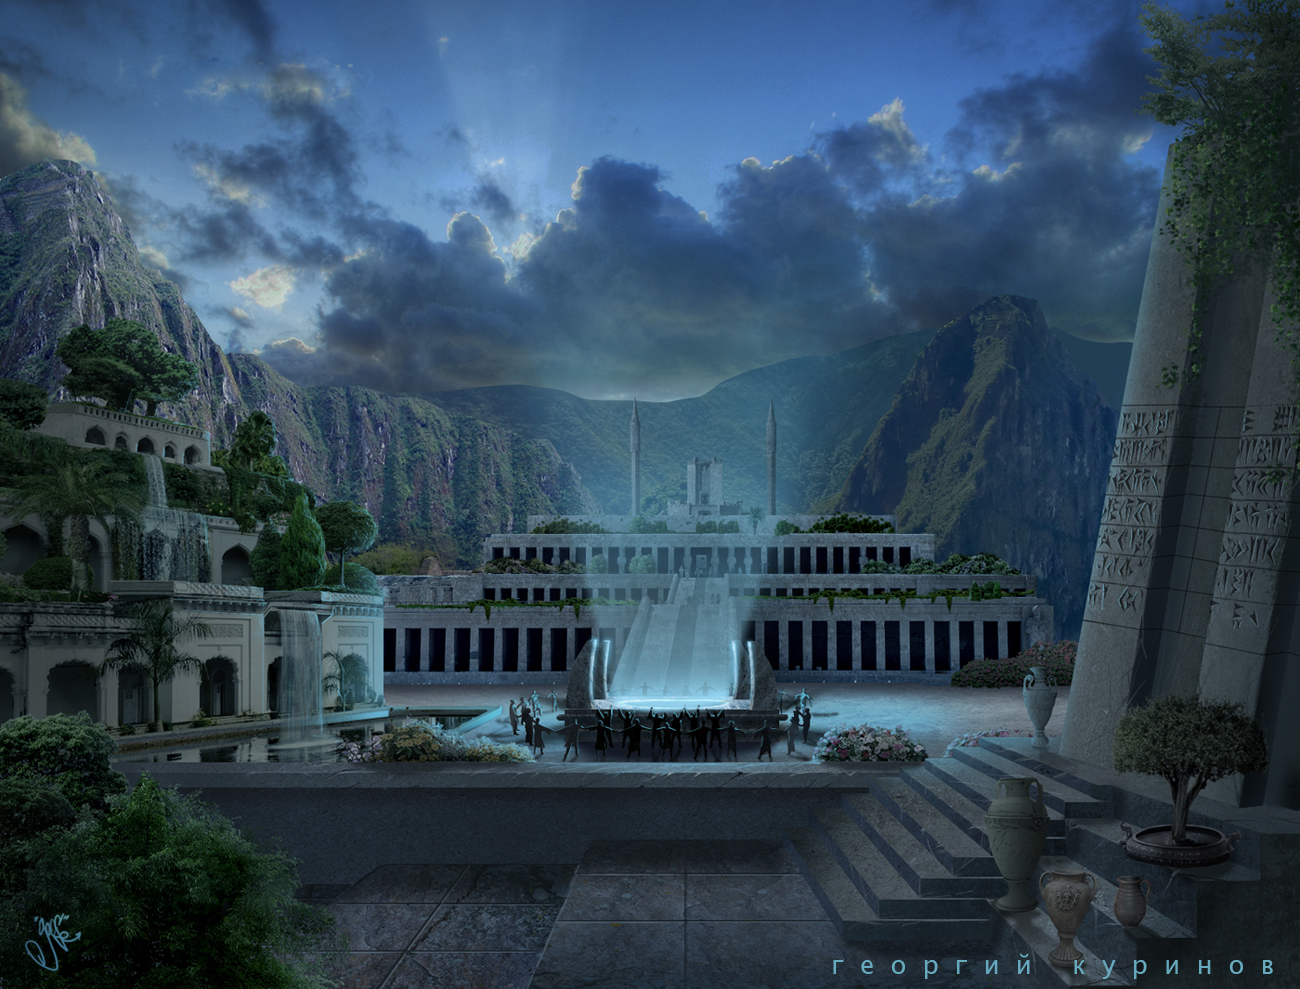 Lords of Atlantis [Game Trailer] mattepaint к заставке 3